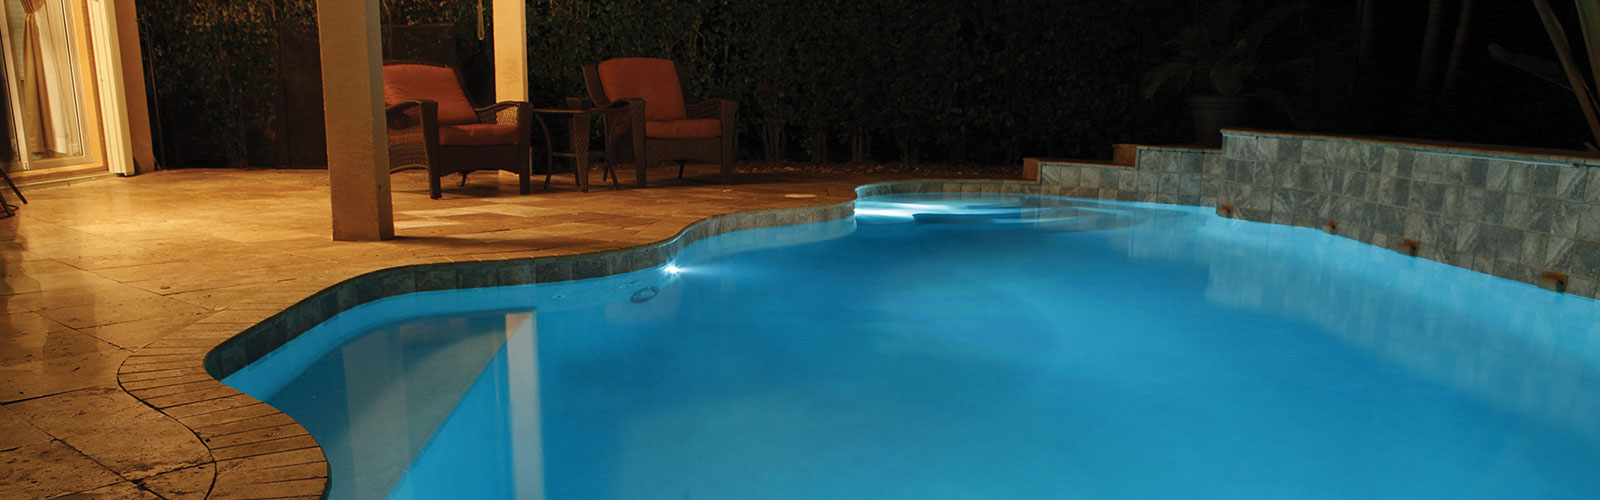 Swimming Pool Price Quote and Info from Zagers